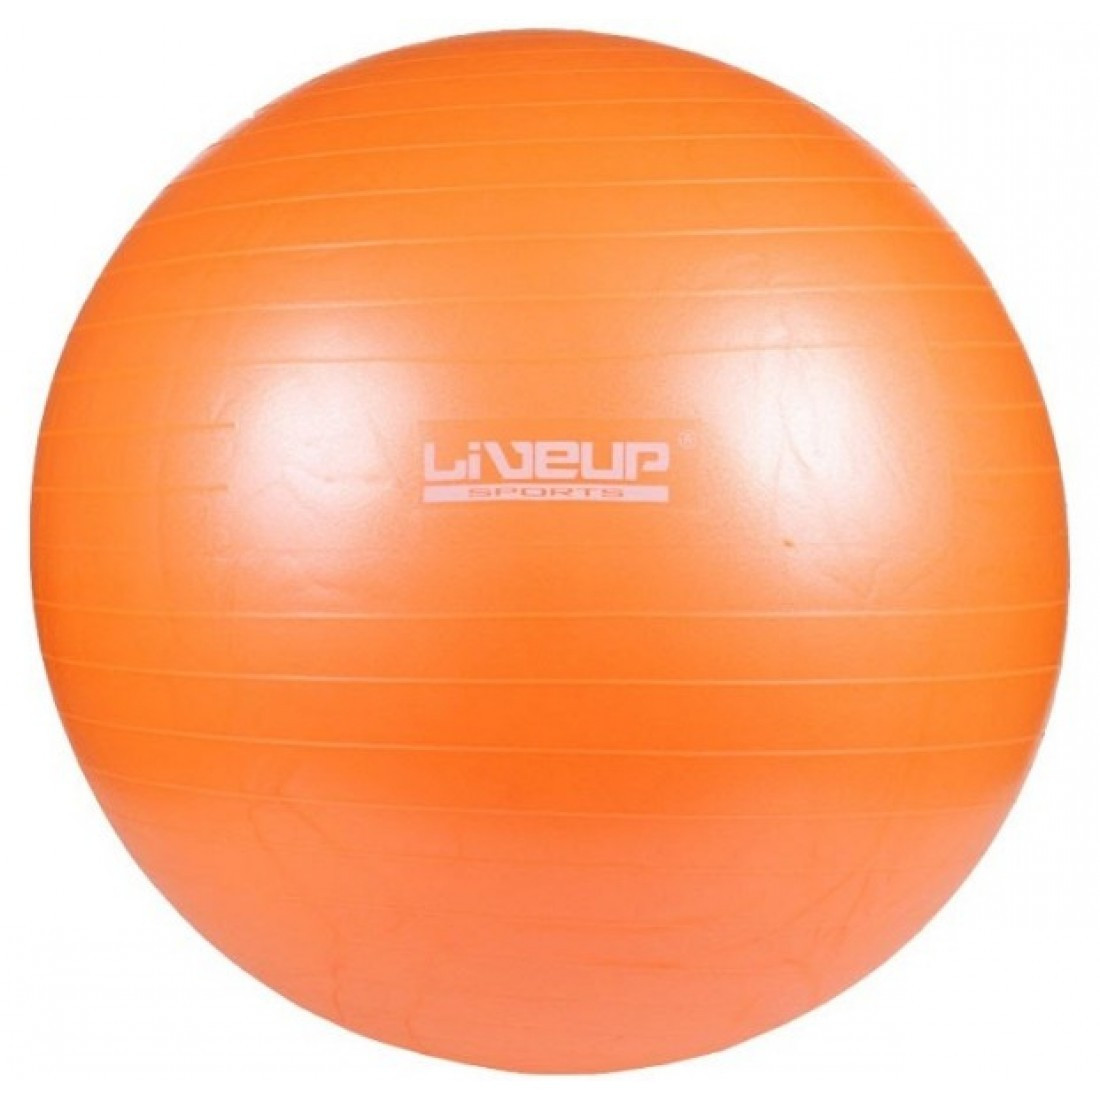 Фитбол антивзрыв, насос в комплекте ANTI-BURST BALL orange 65 см